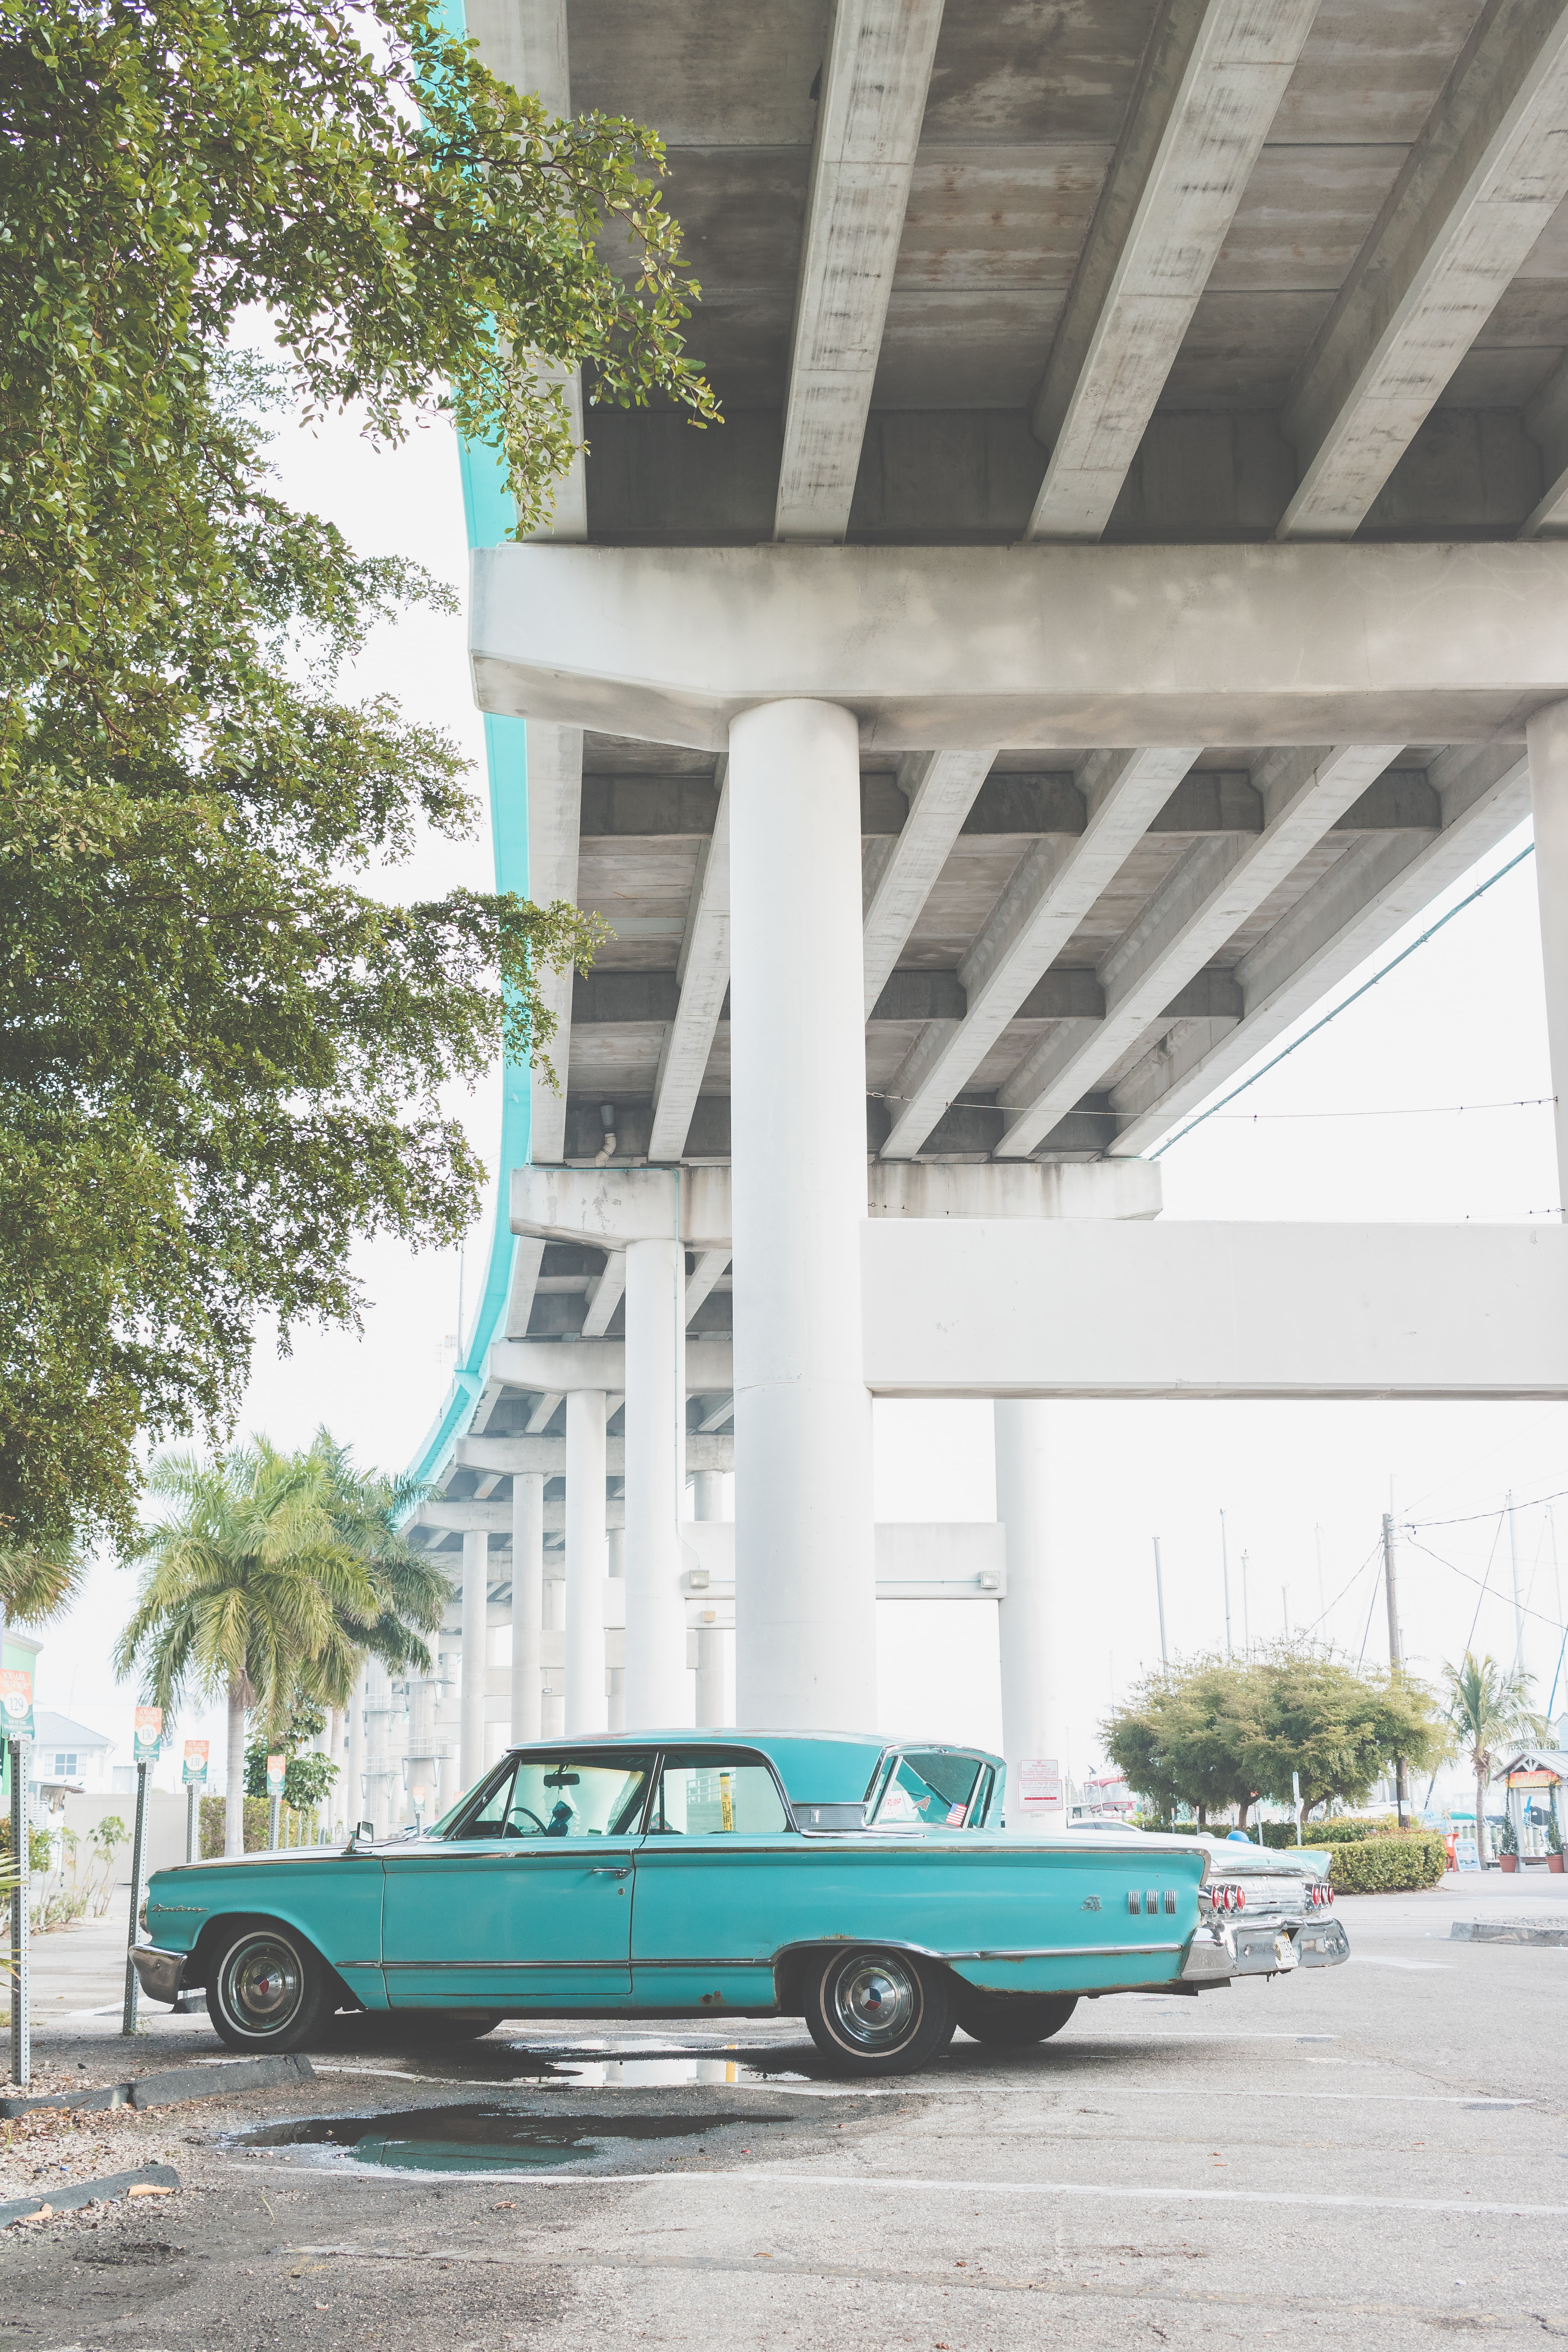 Vintage turquoise car parked underneath an overpass.